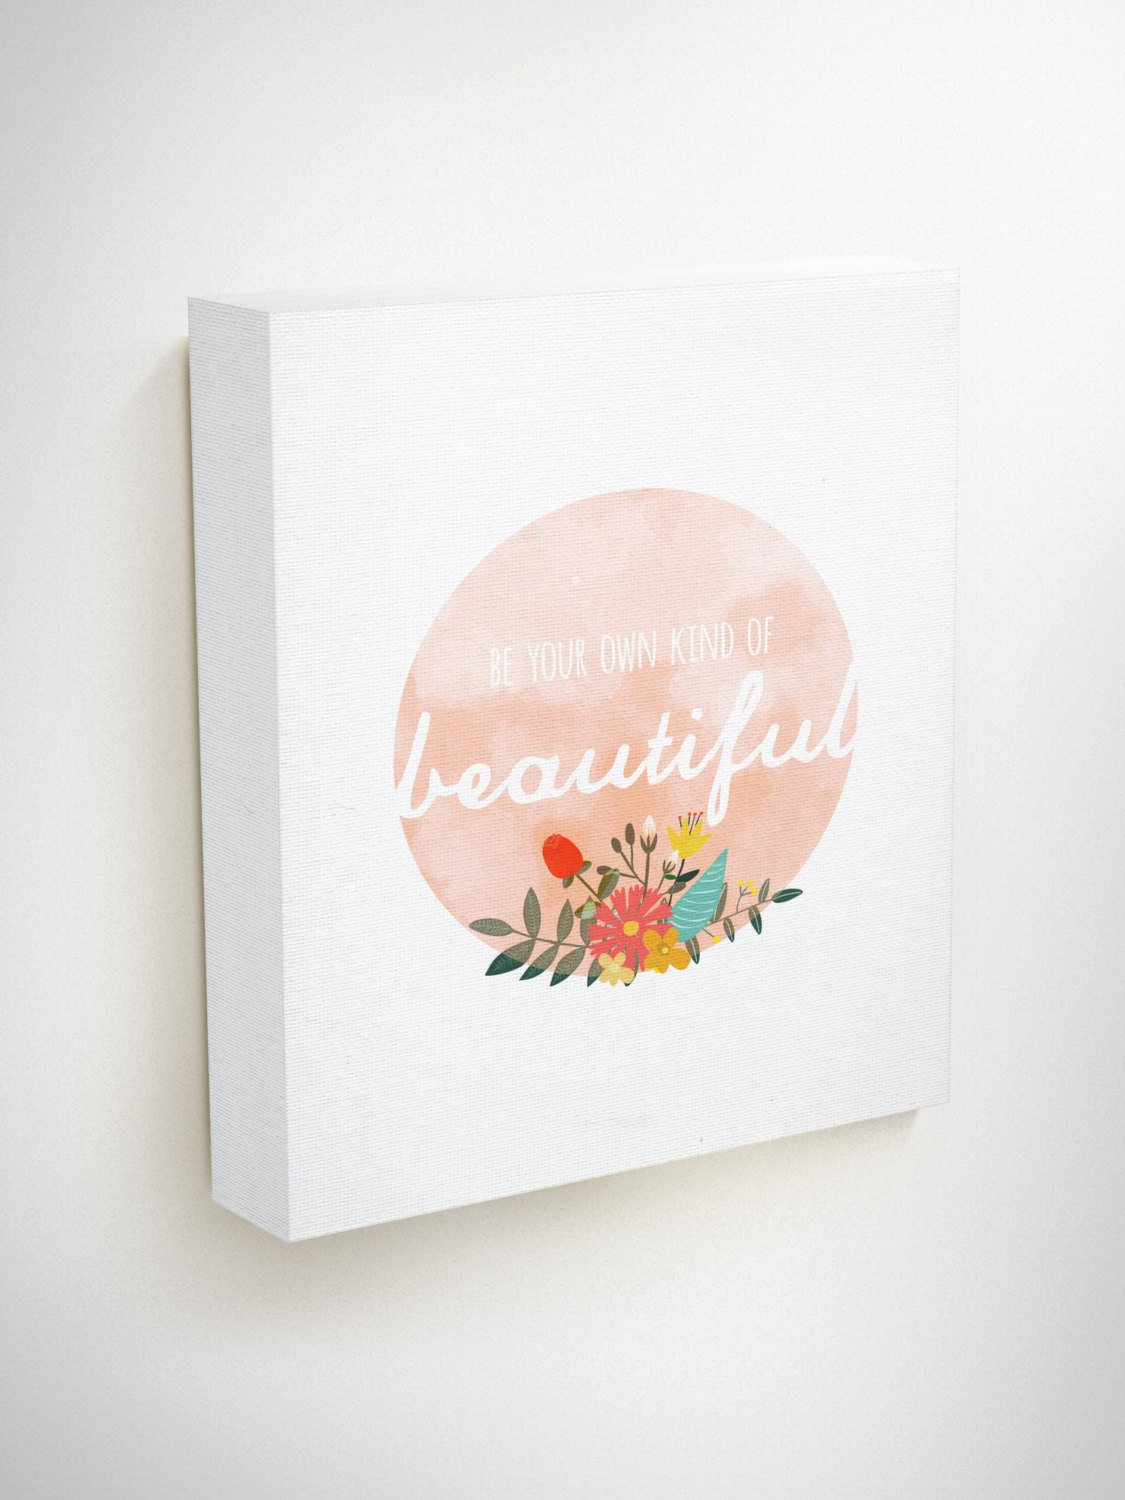 Be Your Own Kind Of Beautiful, Floral Canvas Art, Floral Wall Decor, Beautiful Wall Art, Confidence, Canvas Art Quote, Motivational Wall Art